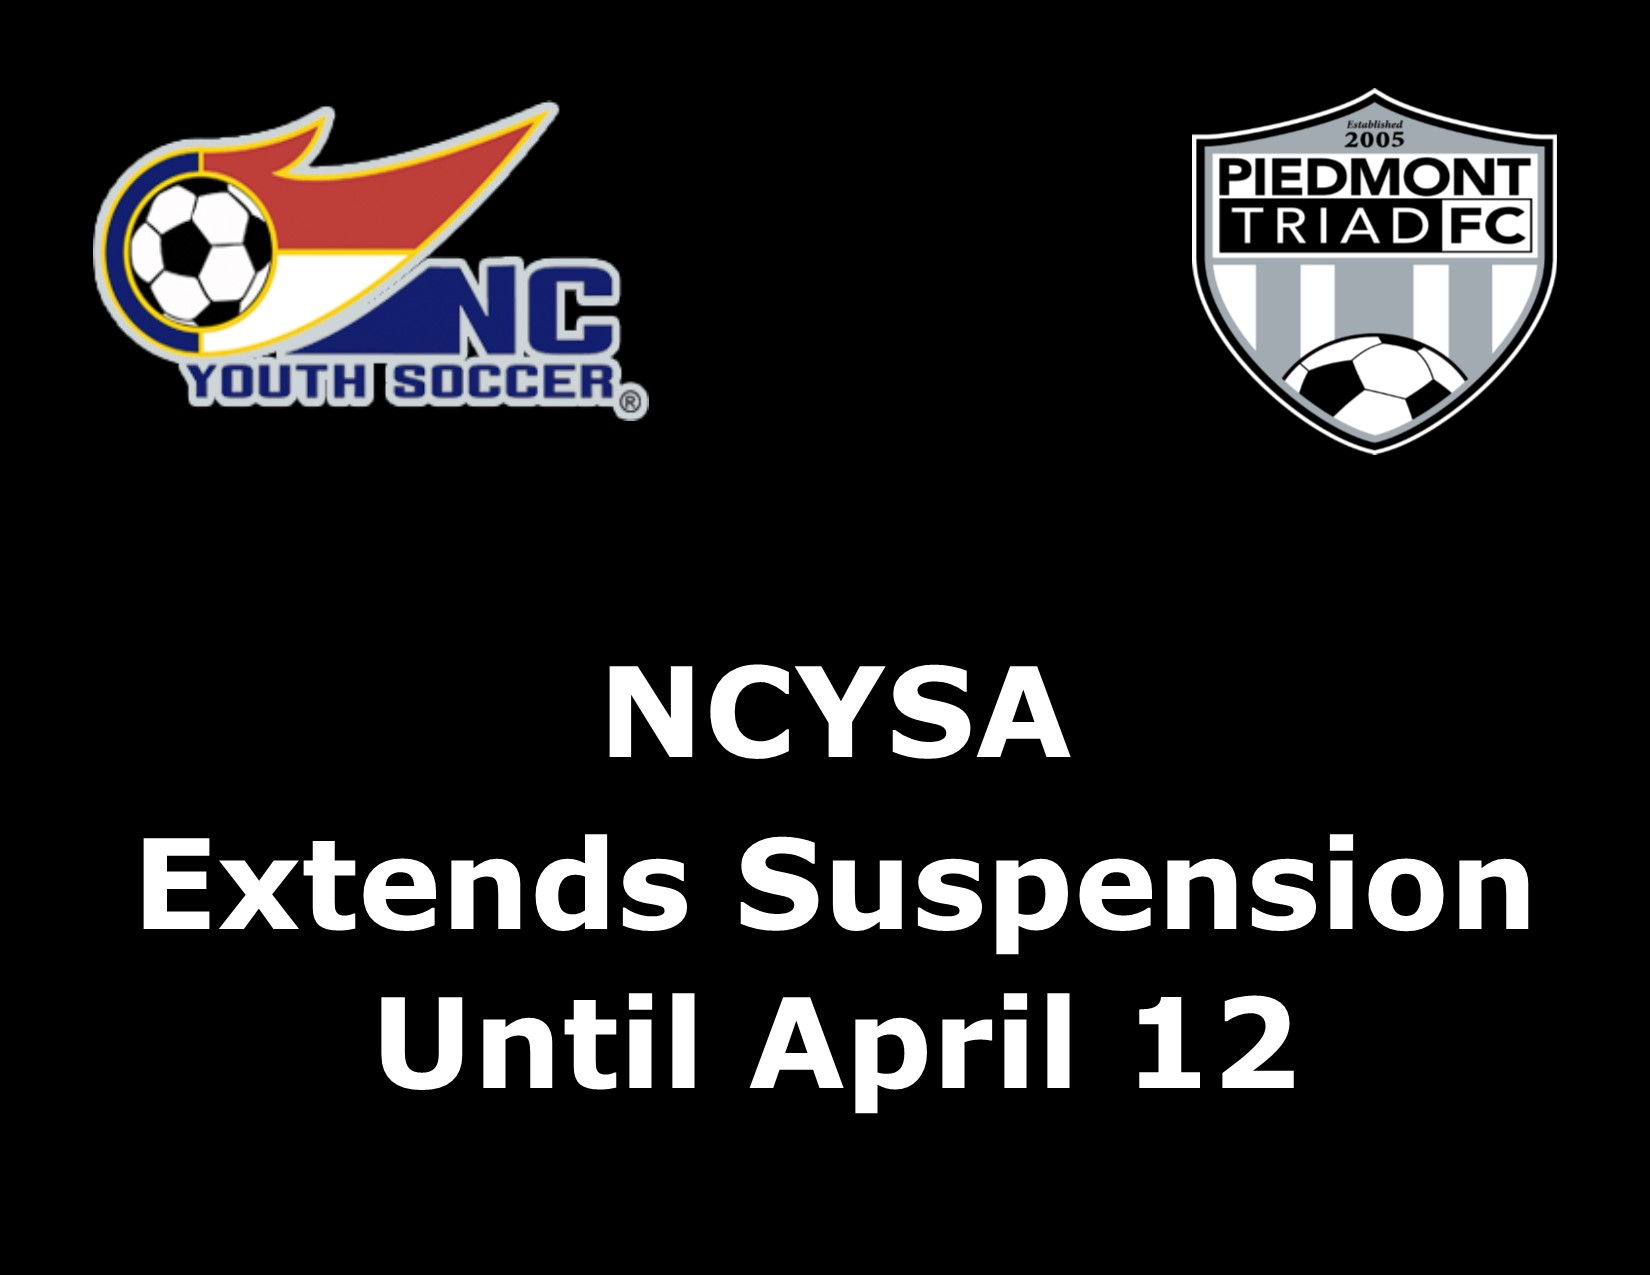 NCYSA Extends Suspension